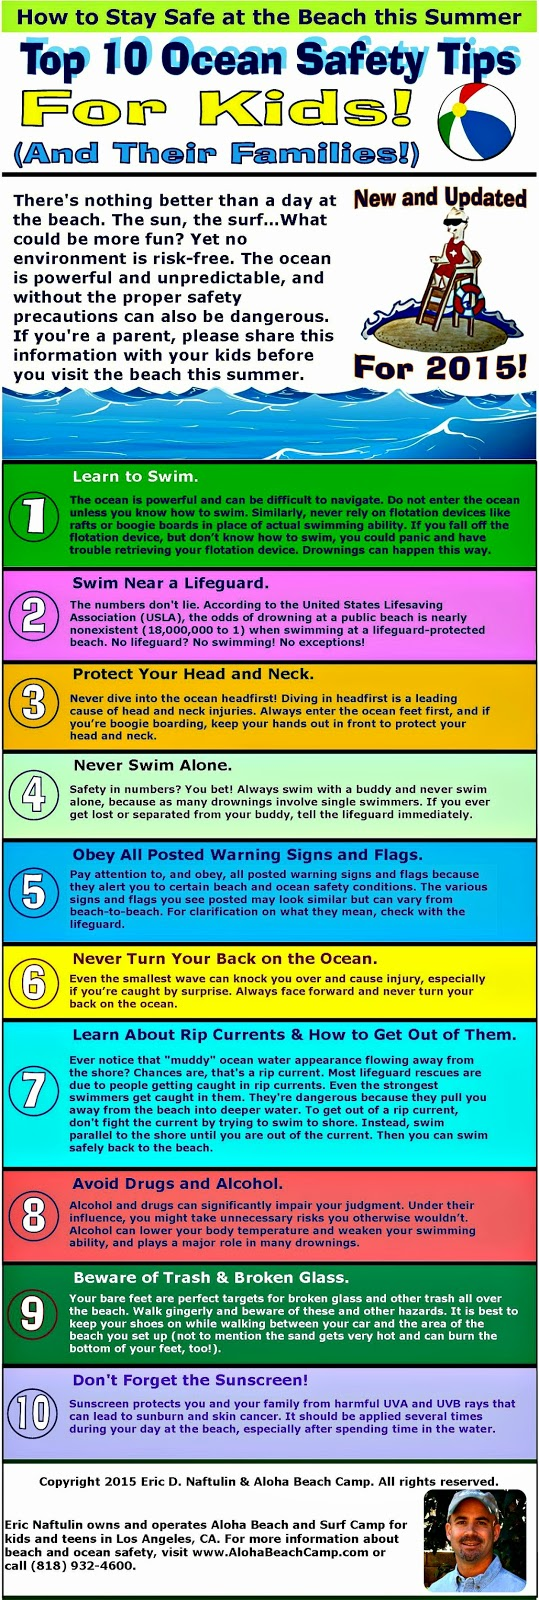 Colorful infographic of Aloha Beach Camp's top 10 beach and ocean safety tips for kids and their families